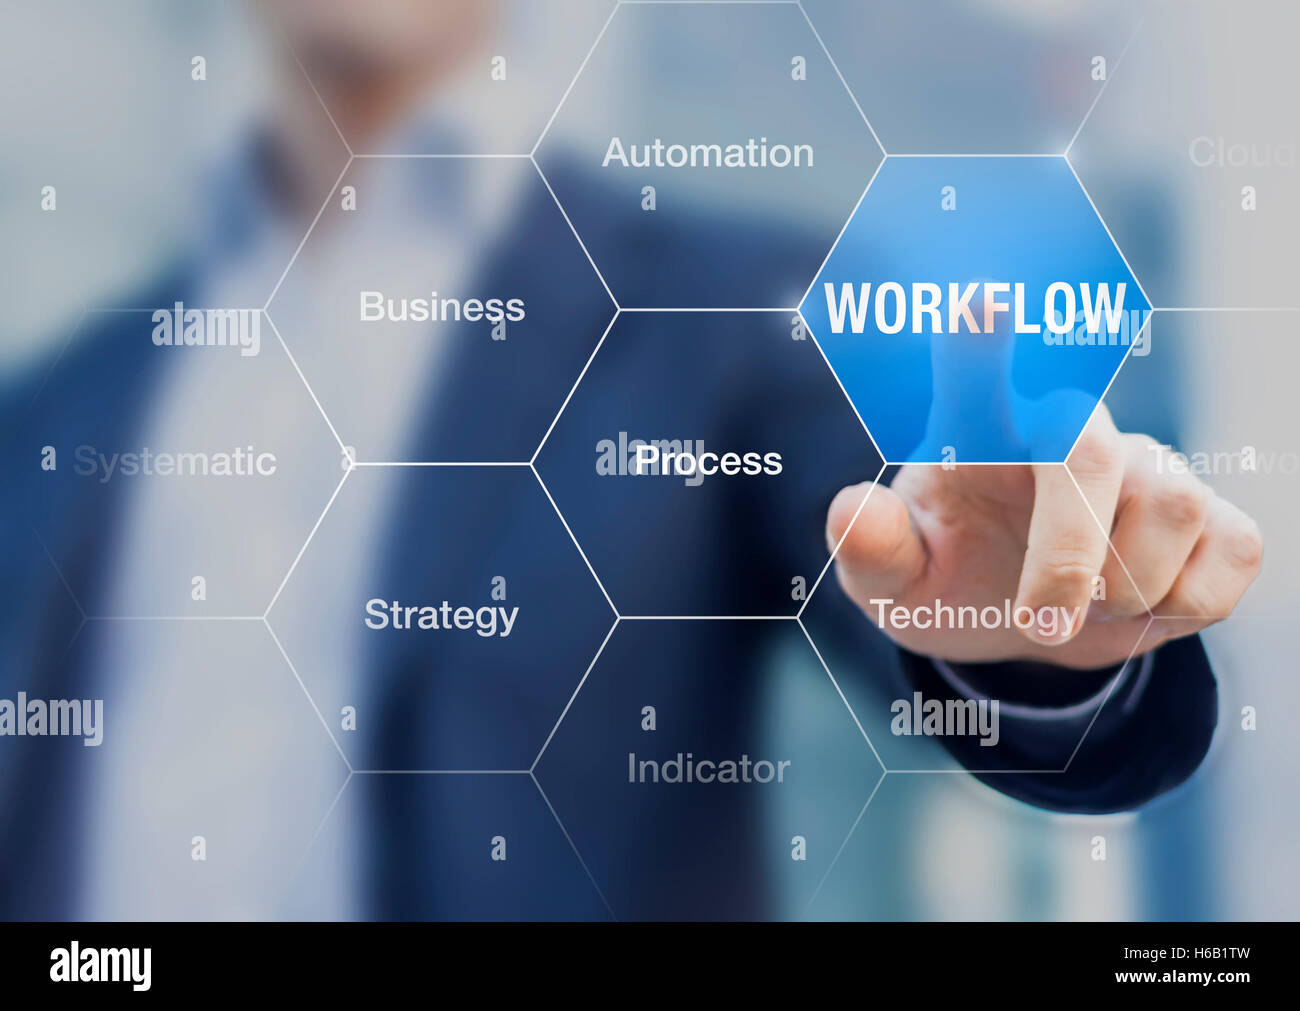 Concept about workflow to improve efficiency in process with automation and technology, button with person in background - Stock Image